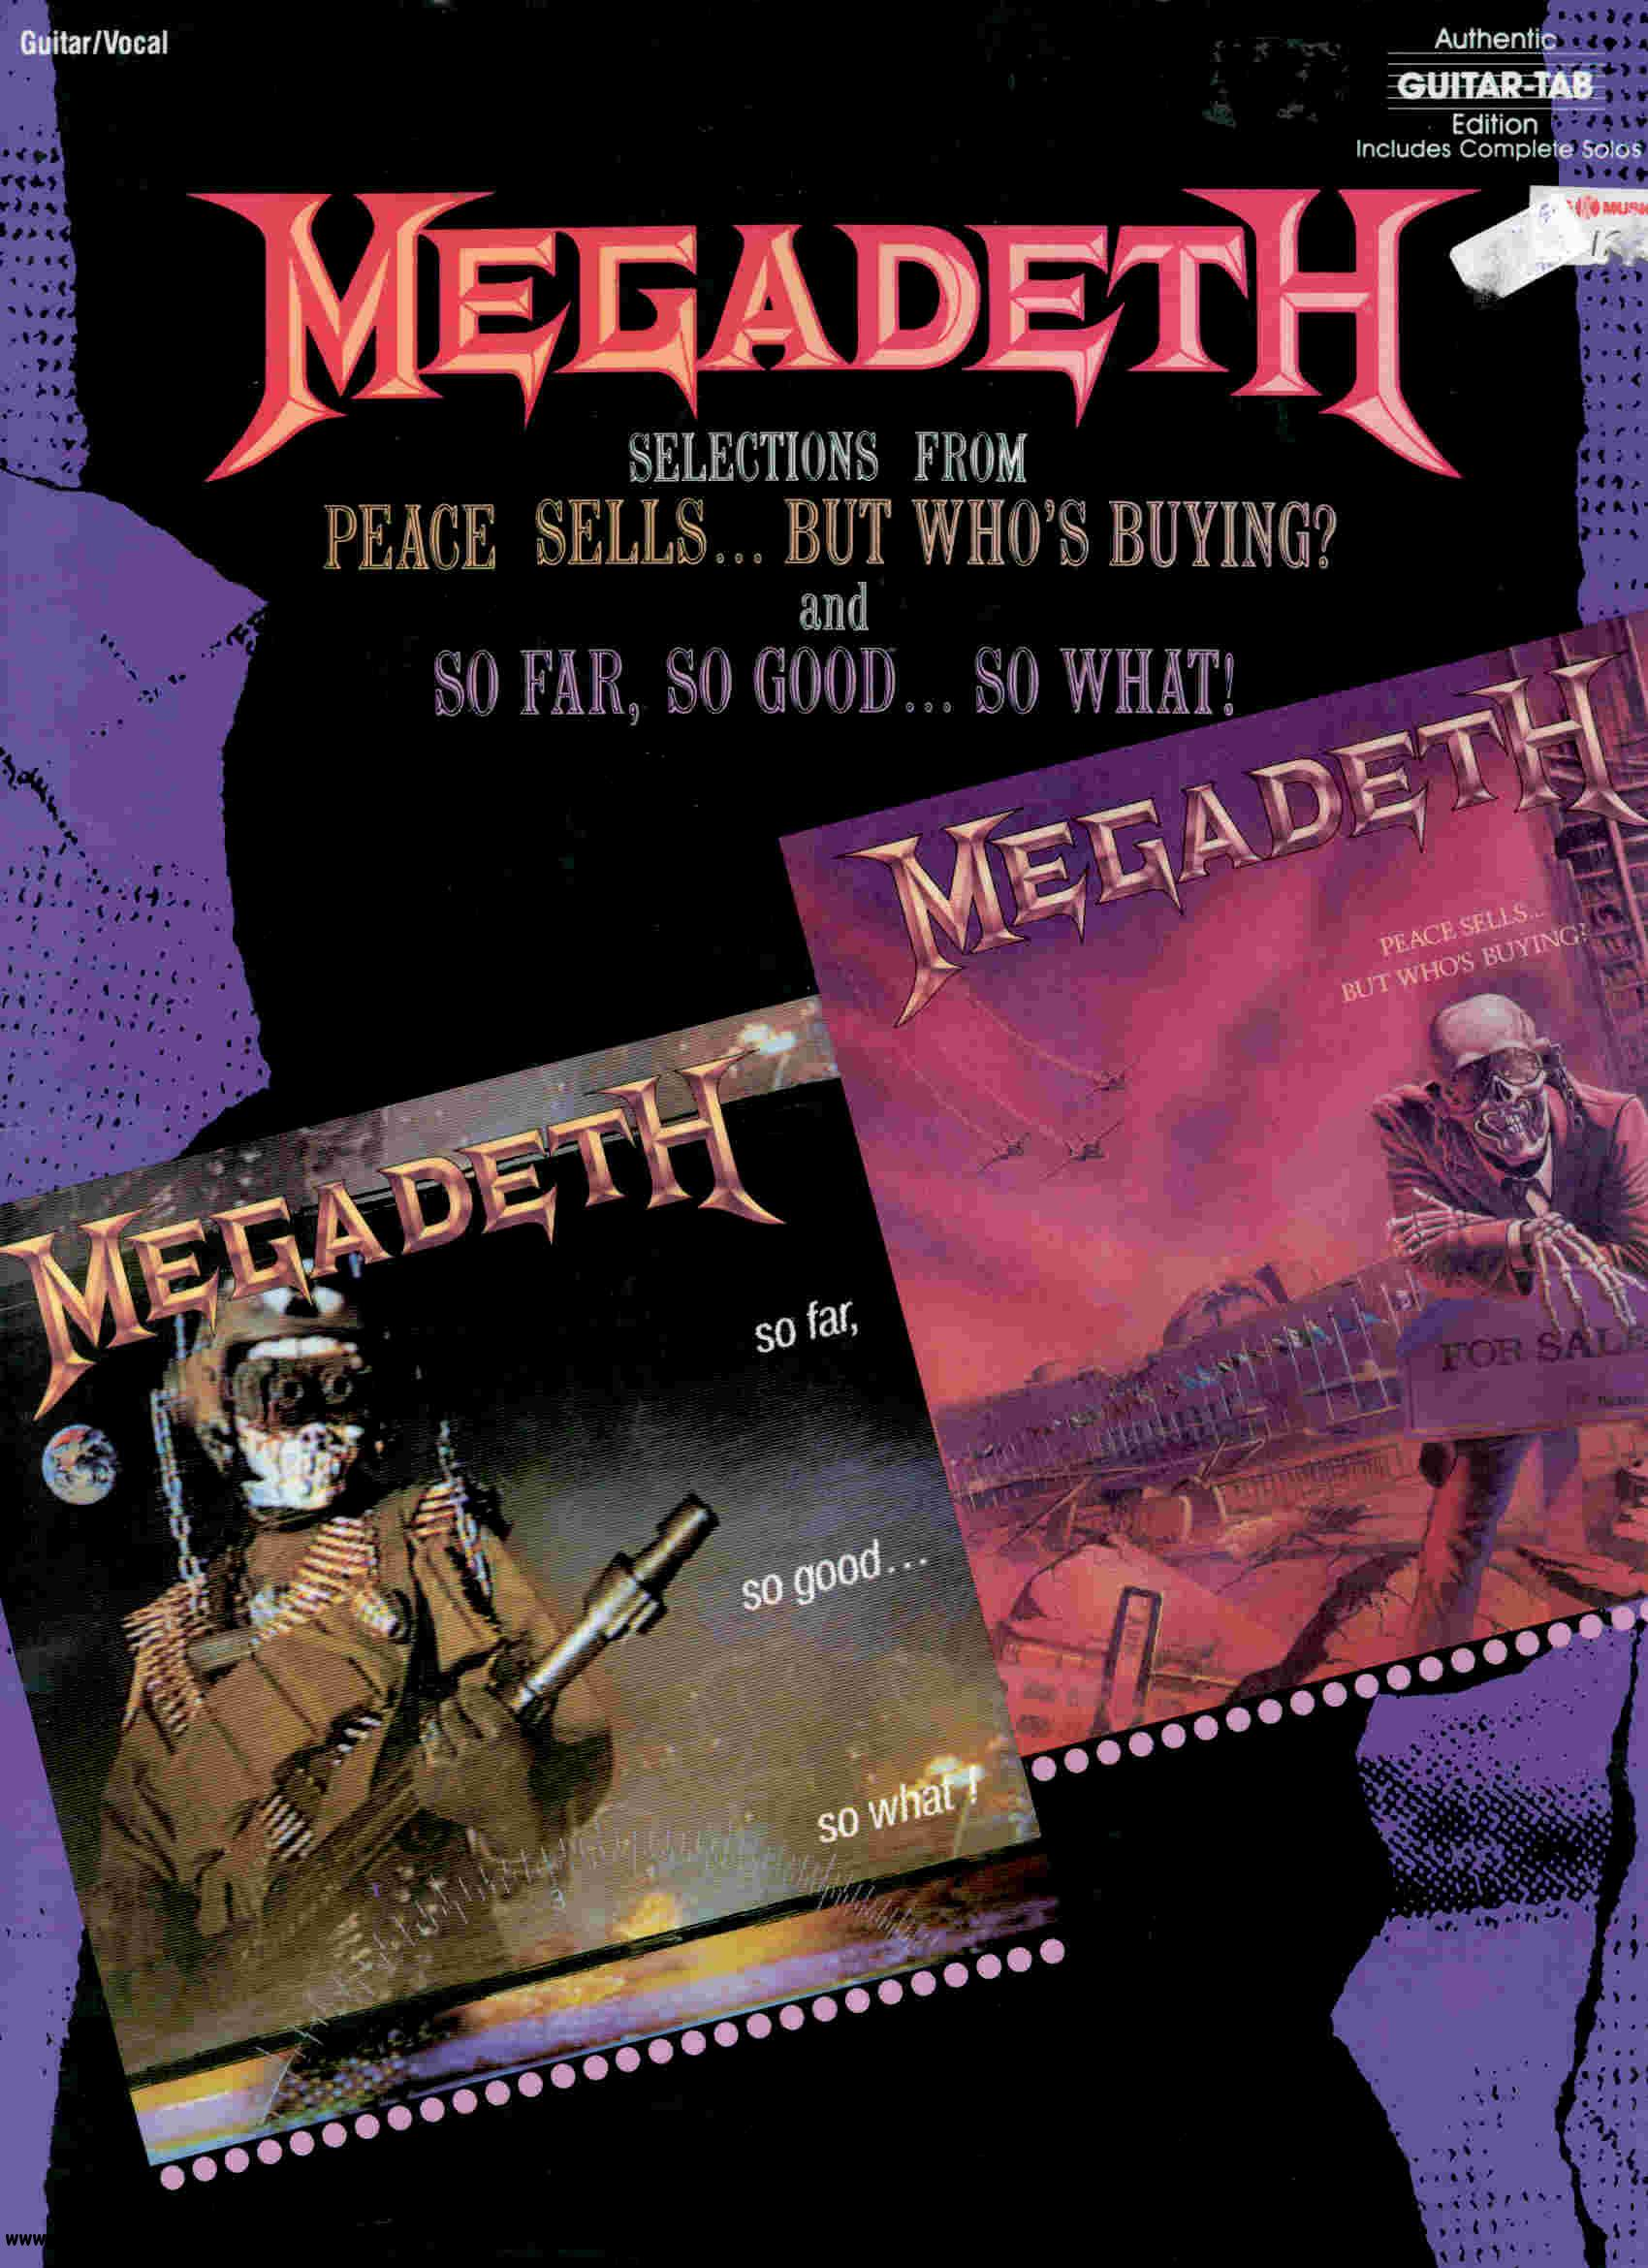 Megadeth - Selections From Peace Sells But Who's Buying & So Far, So Good So What! free download